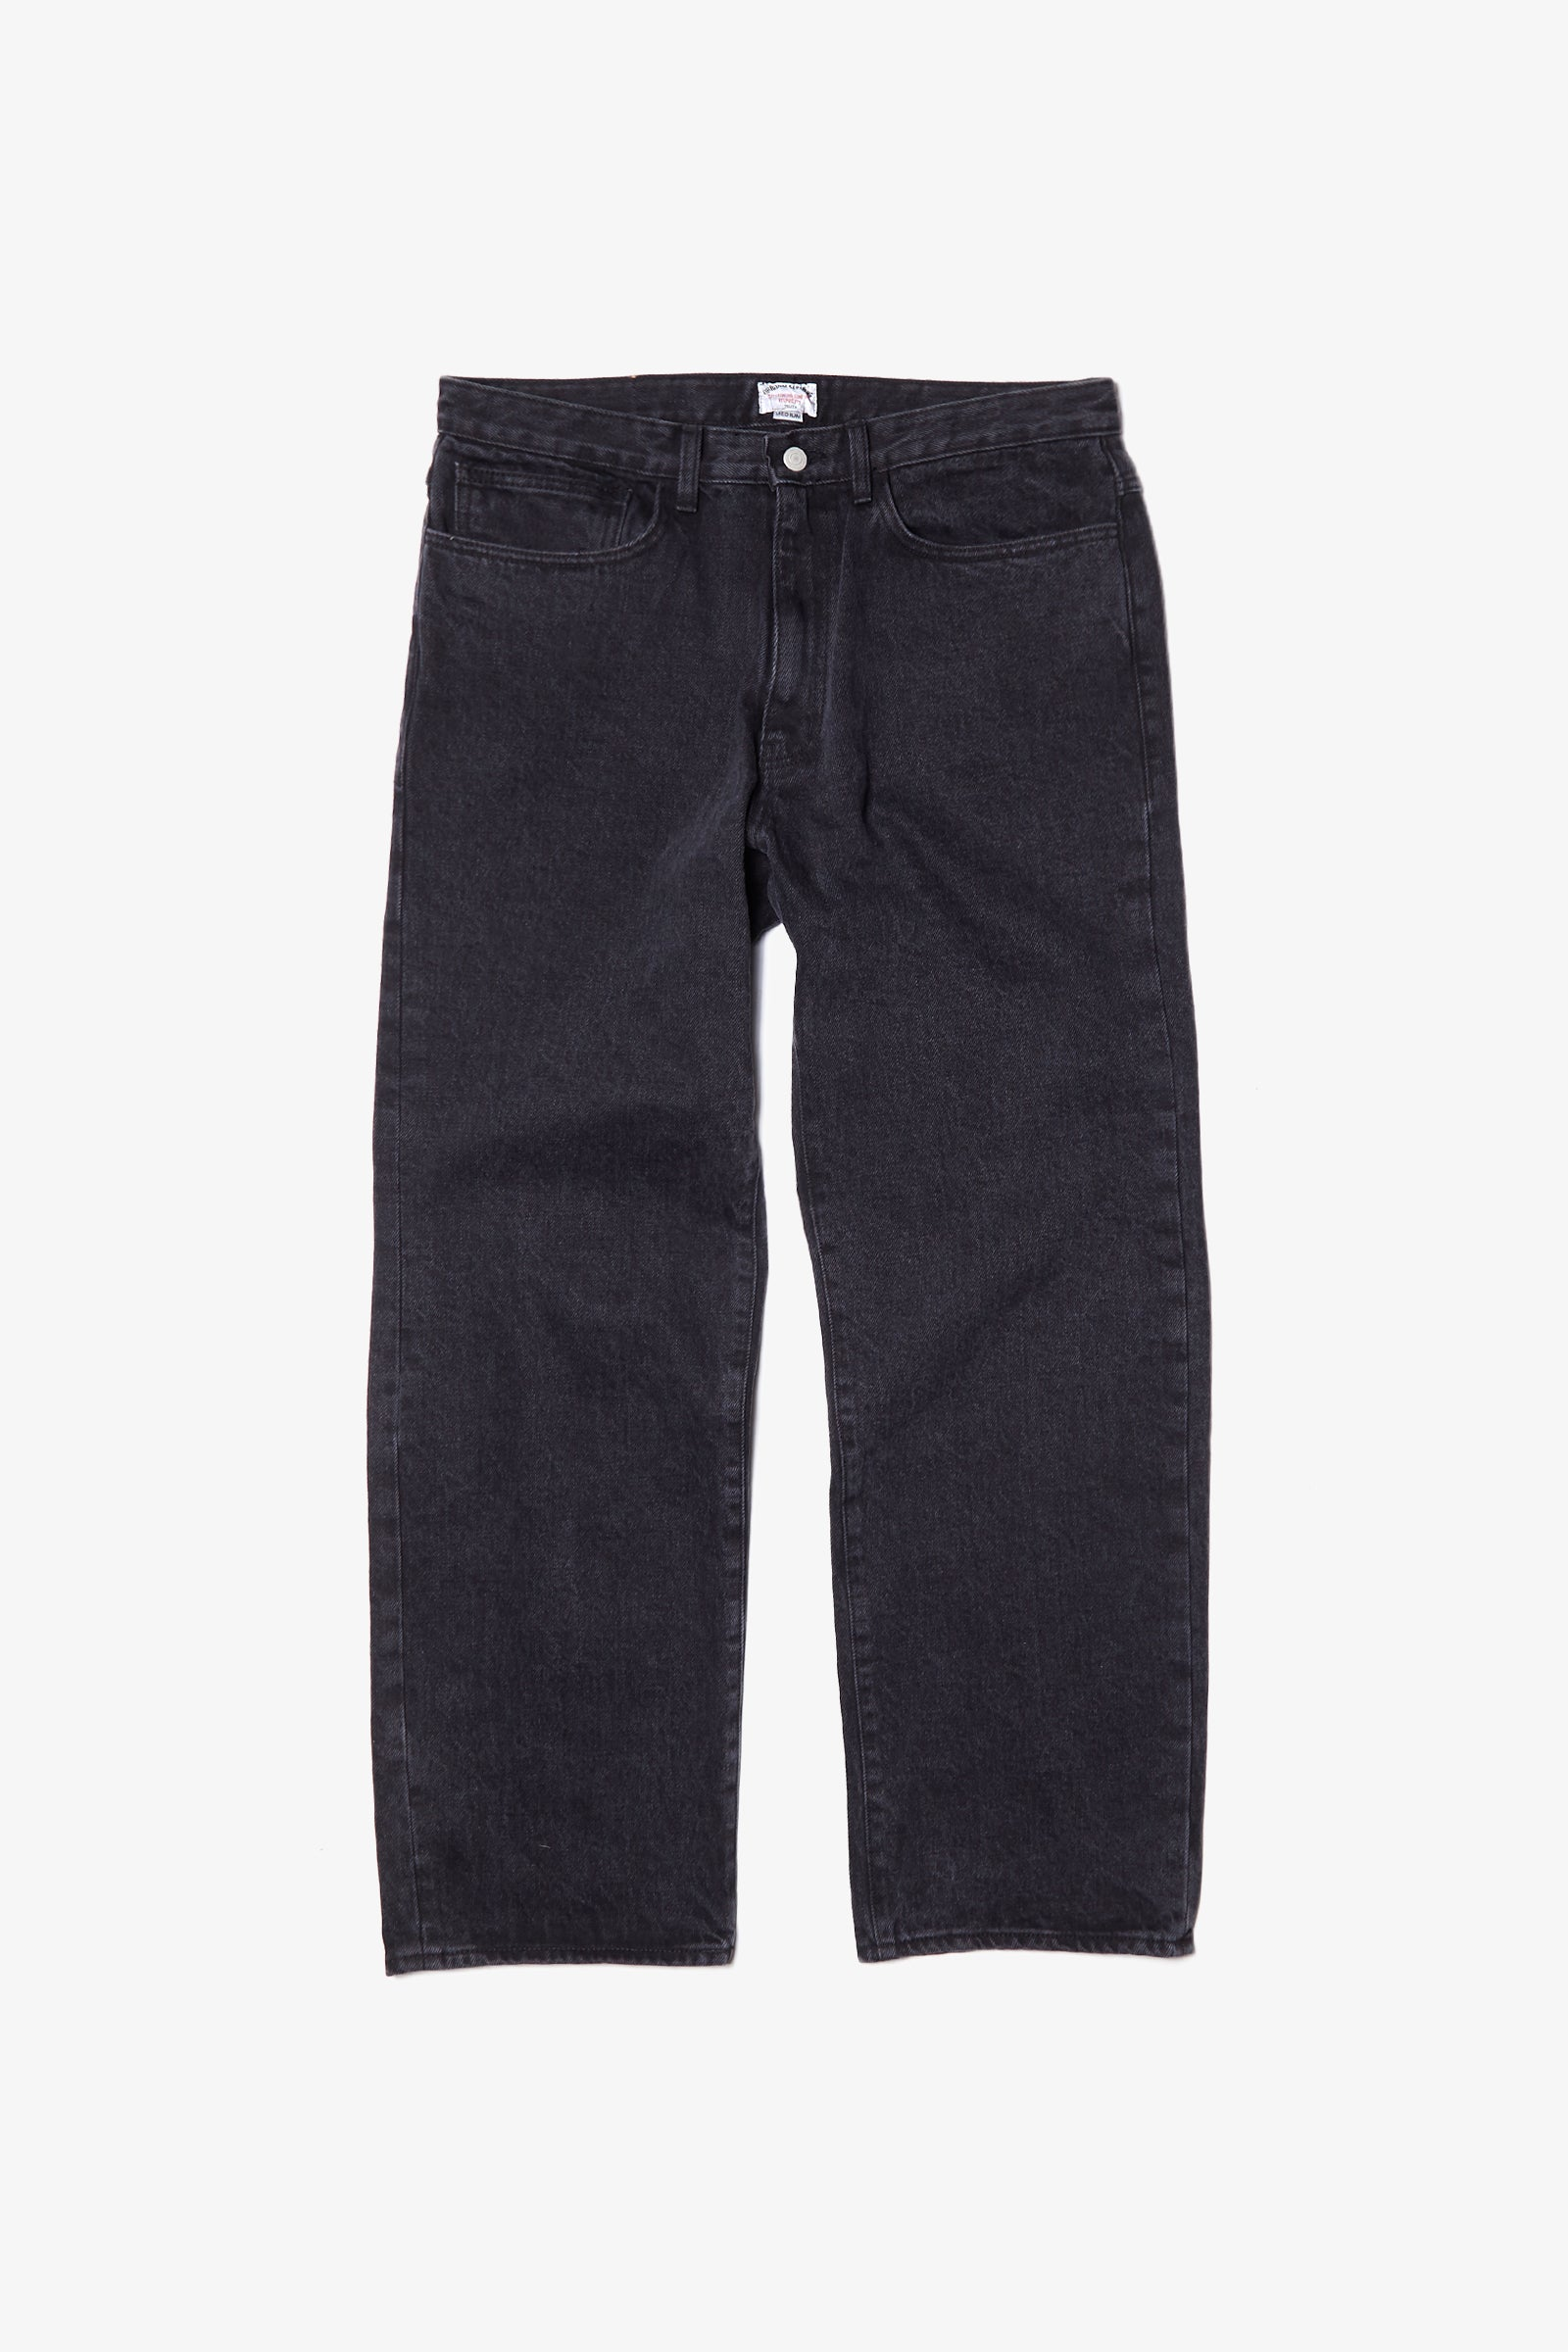 Outstanding & Co. - Wide Washed Jeans - Black